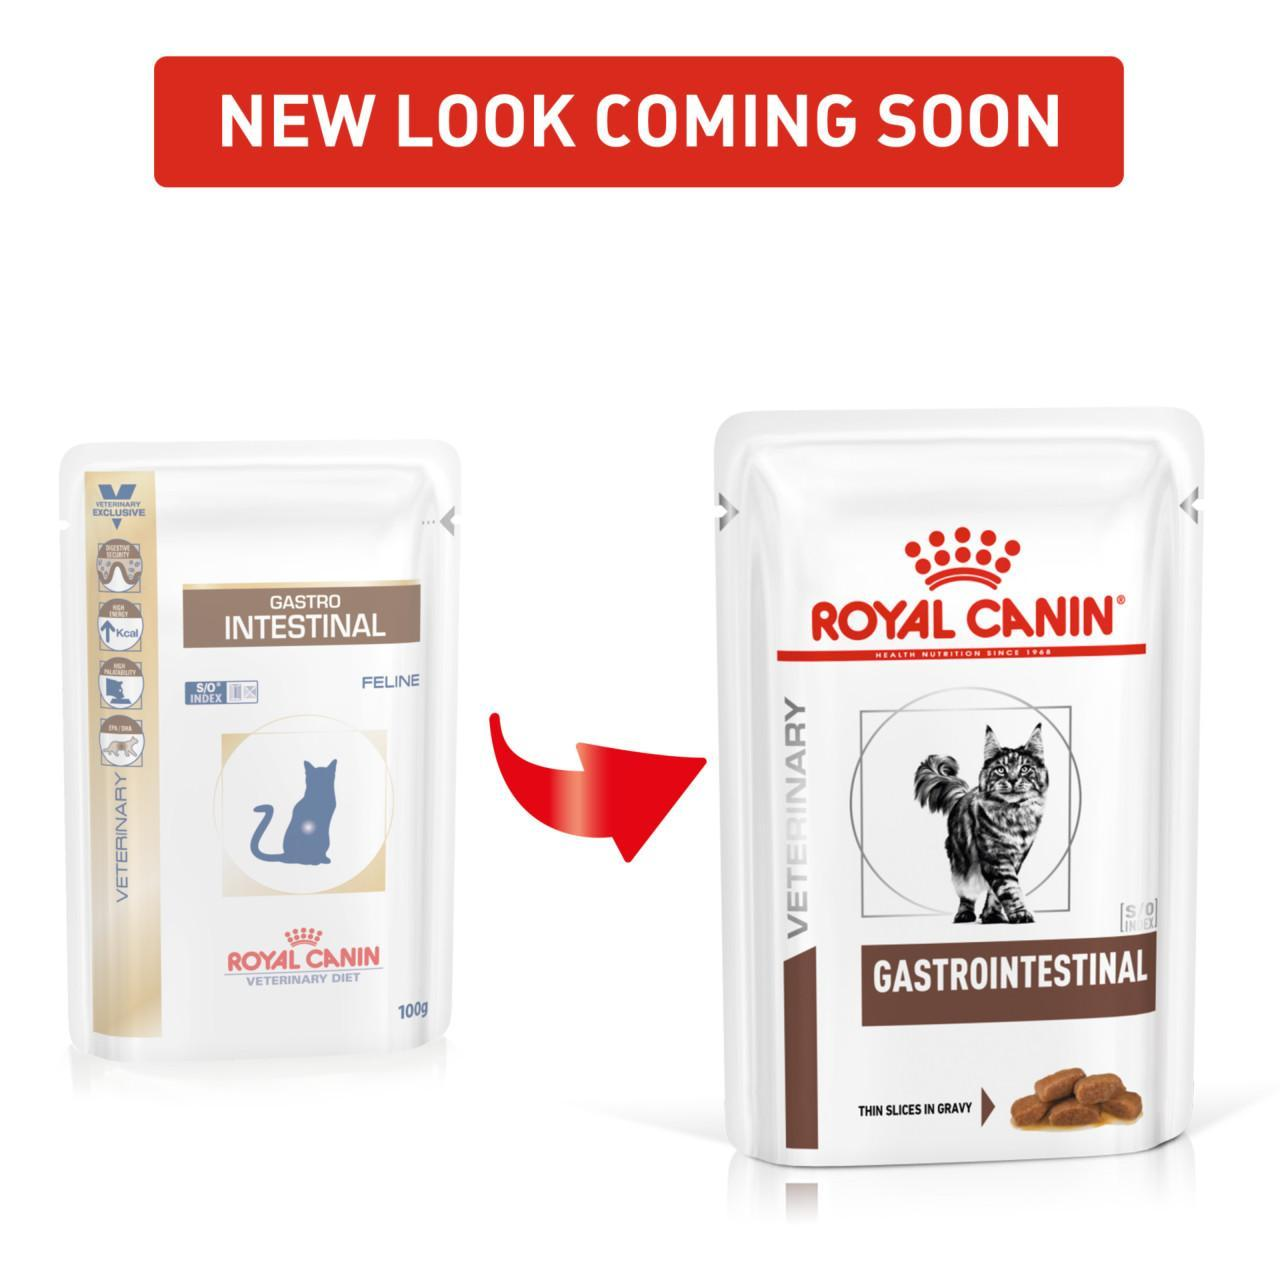 An image of Royal Canin Veterinary Diet Gastro Intestinal Feline